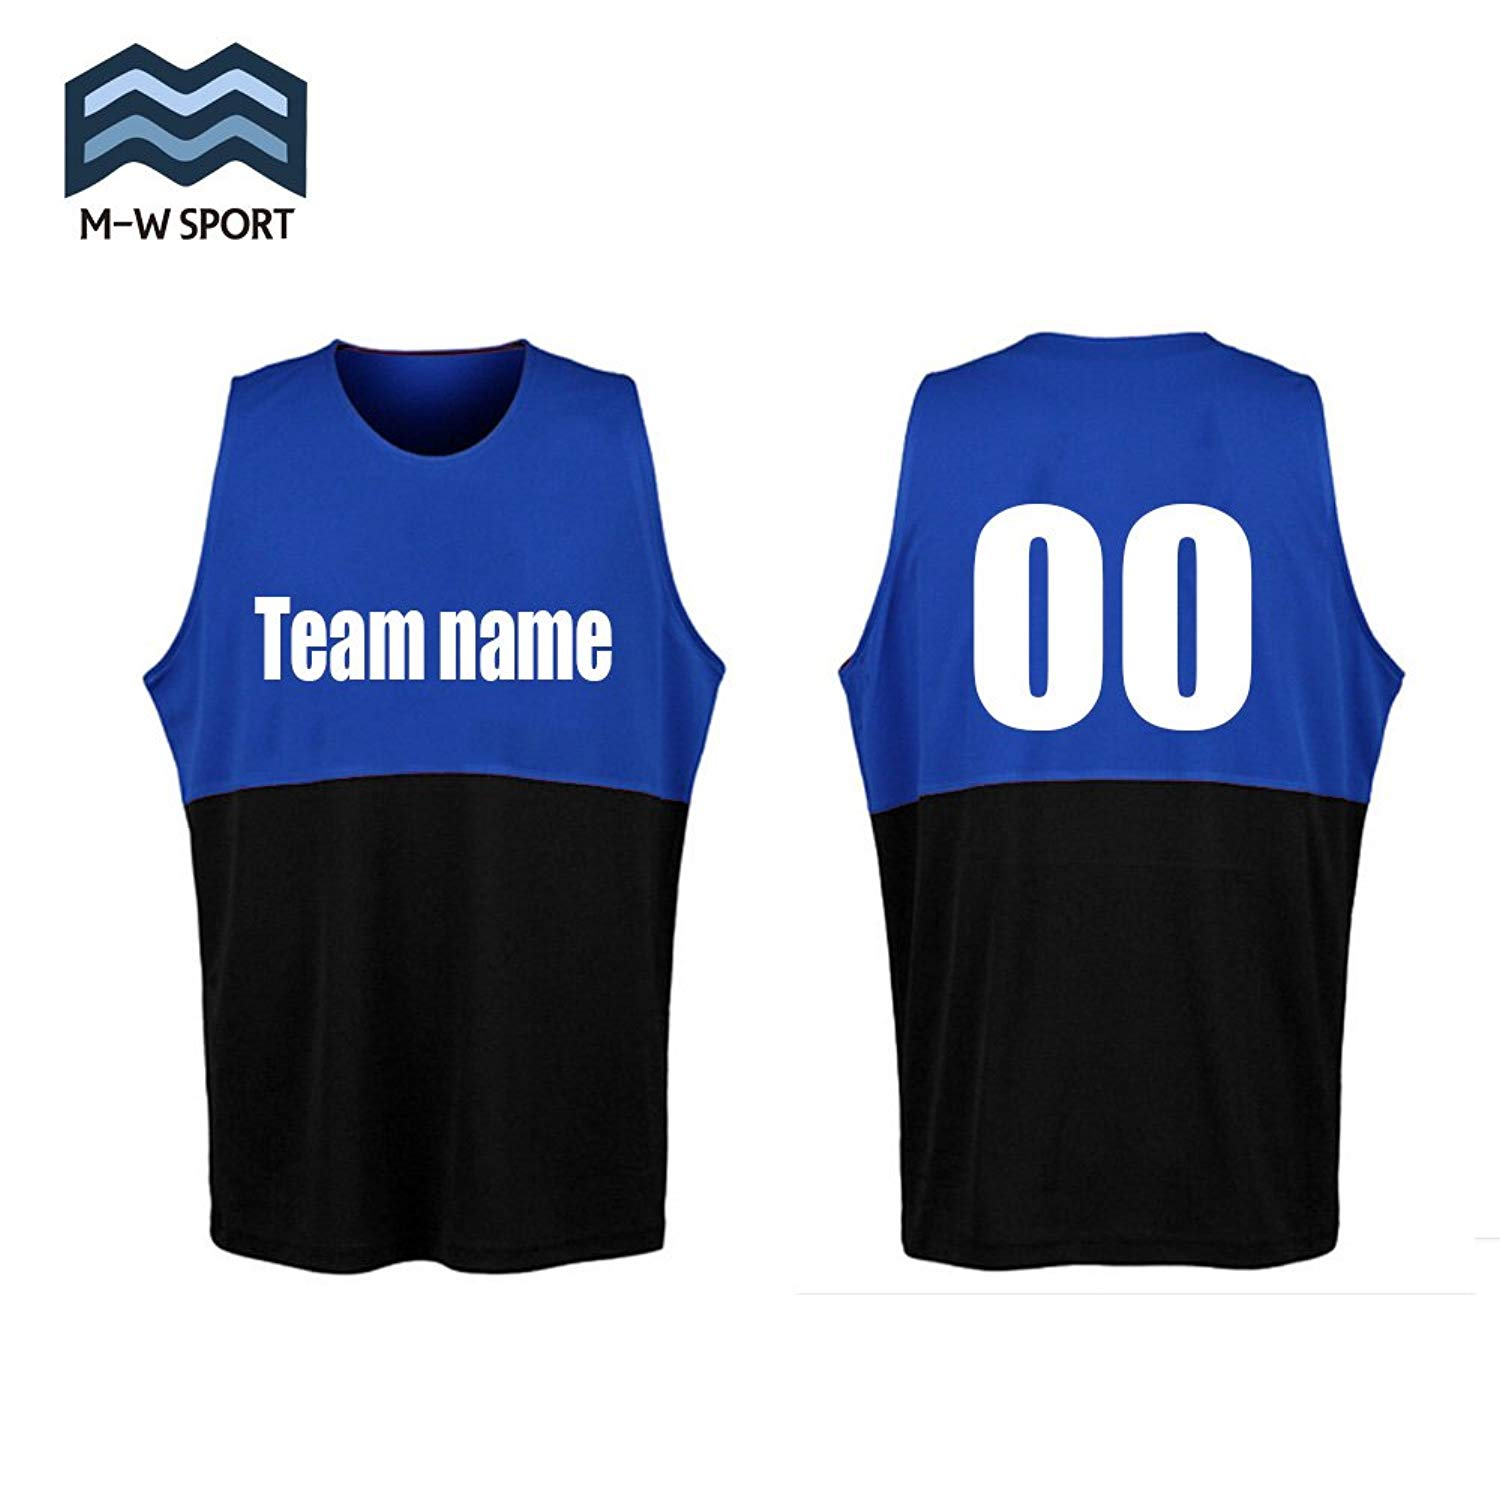 4cb4a93c6359 Get Quotations · M-W Sports Custom Basketball Jerseys Two-Colored Design  Make Your Own Basketball Set